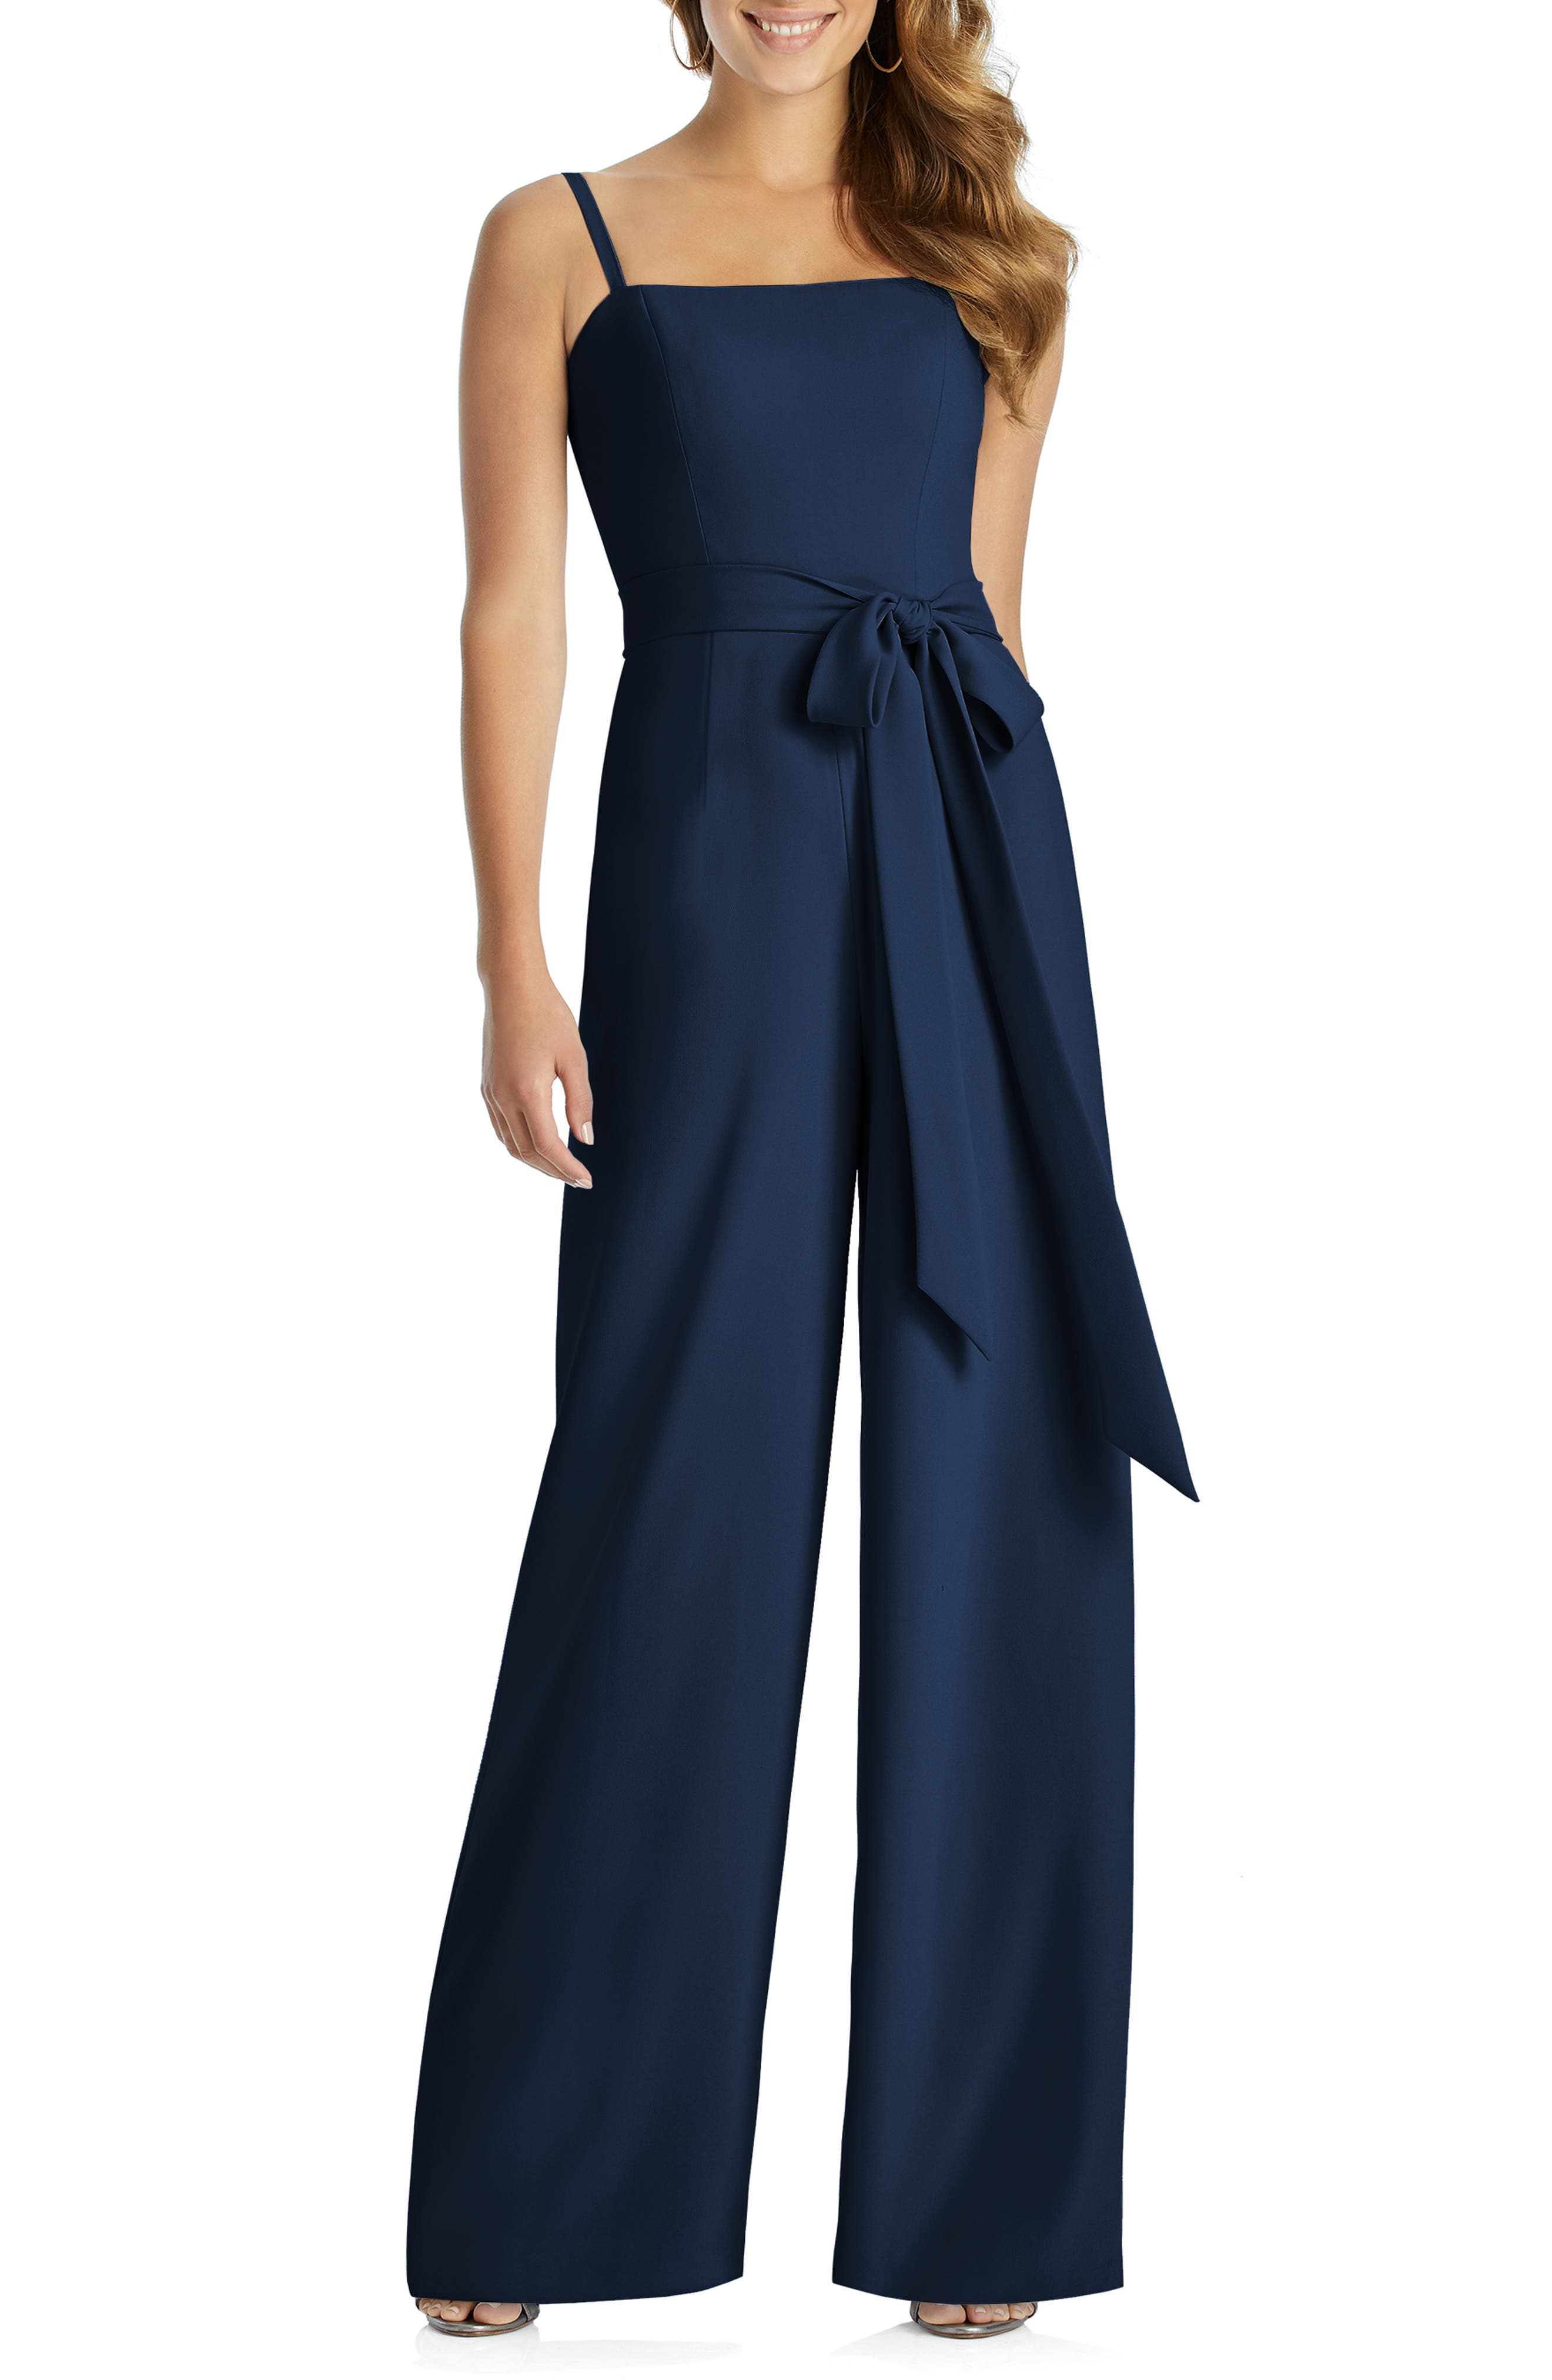 DESSY COLLECTION, Alana Crepe Jumpsuit, Main thumbnail 1, color, MIDNIGHT